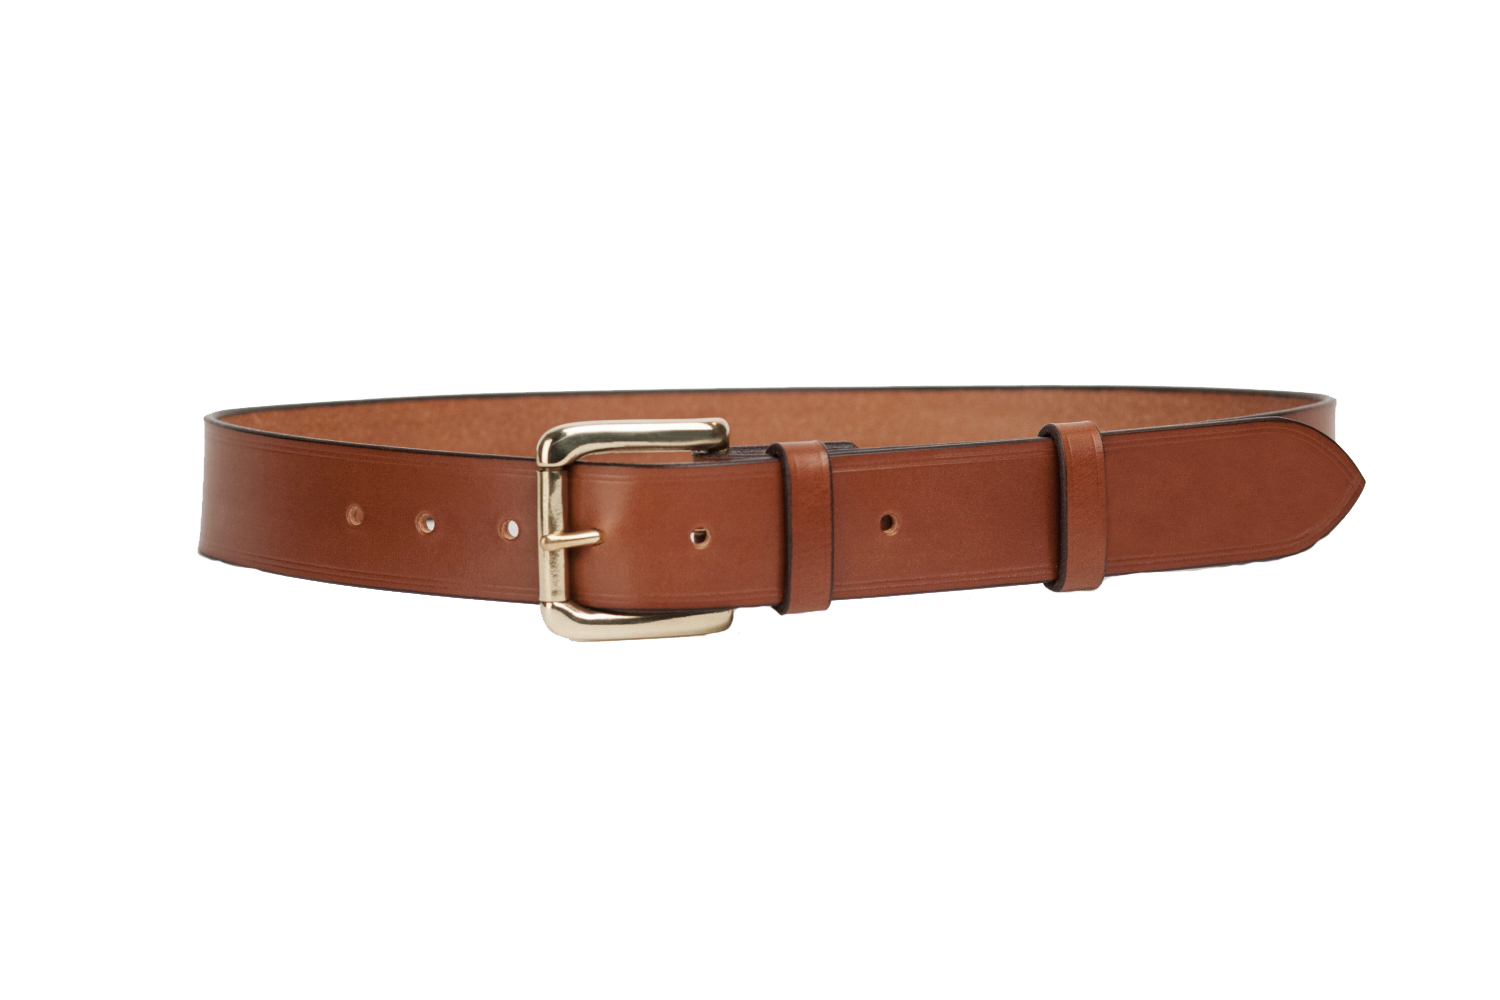 mid brown bridle leather belt with 1 5 inch roller buckle